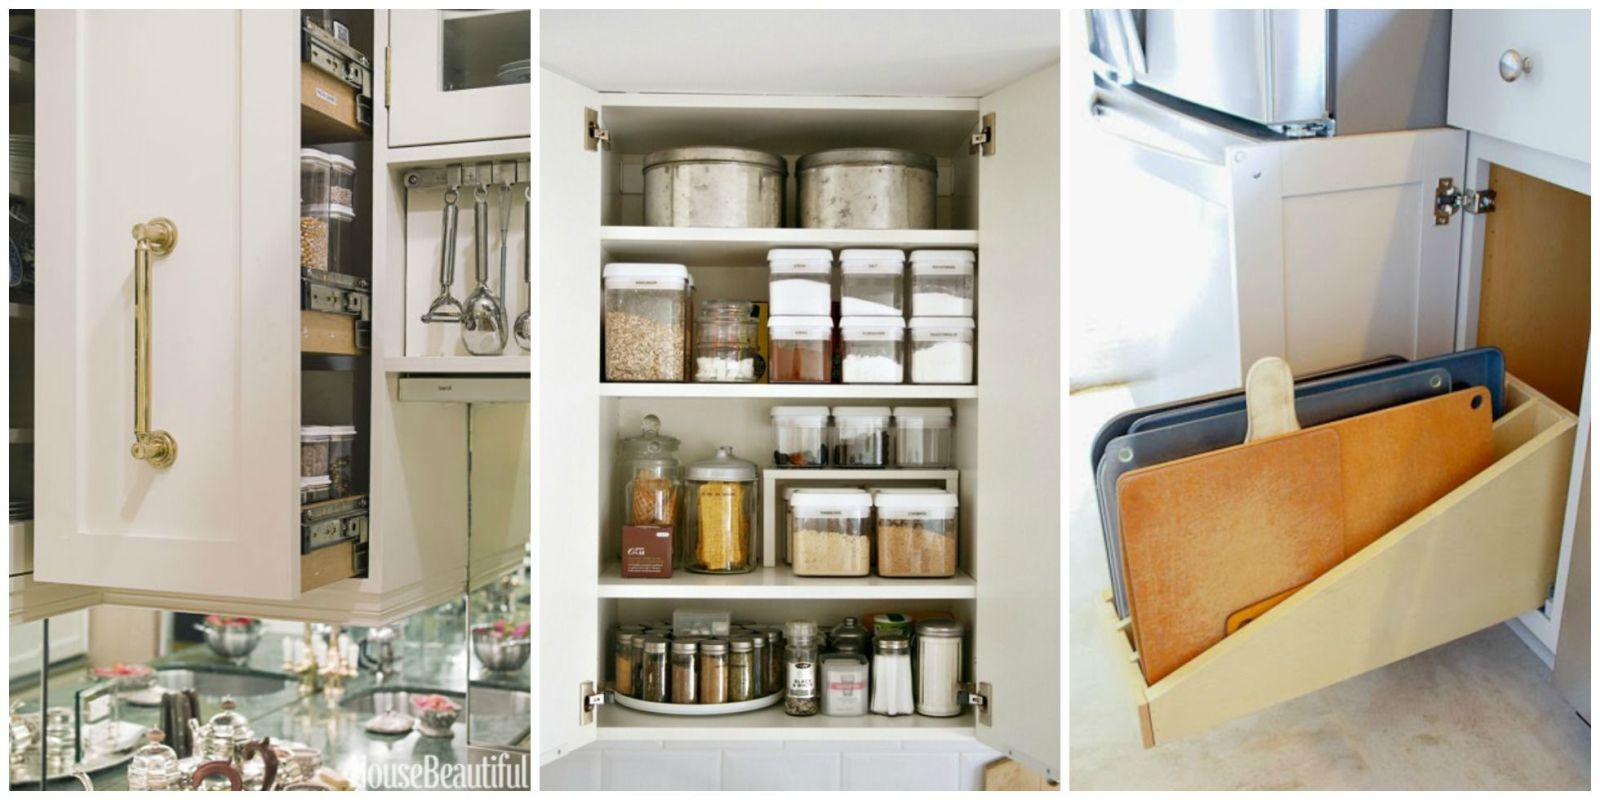 Kitchen Organize Organizing Kitchen Cabinets Storage Tips For Cabinets